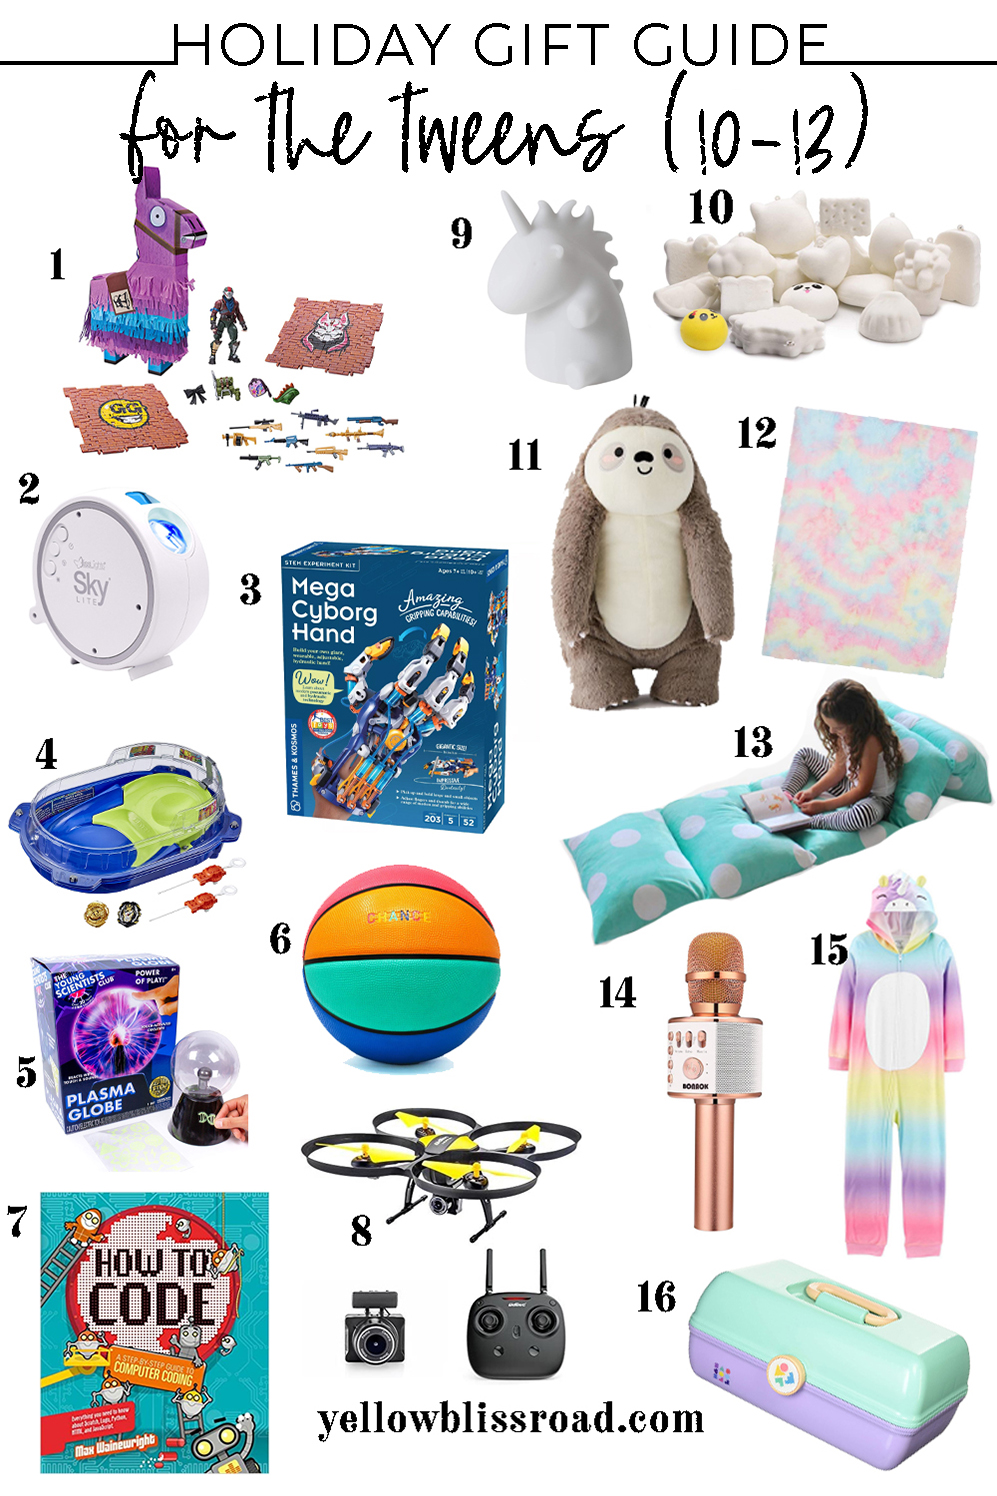 collage of holiday gift ideas for tweens age 10-13